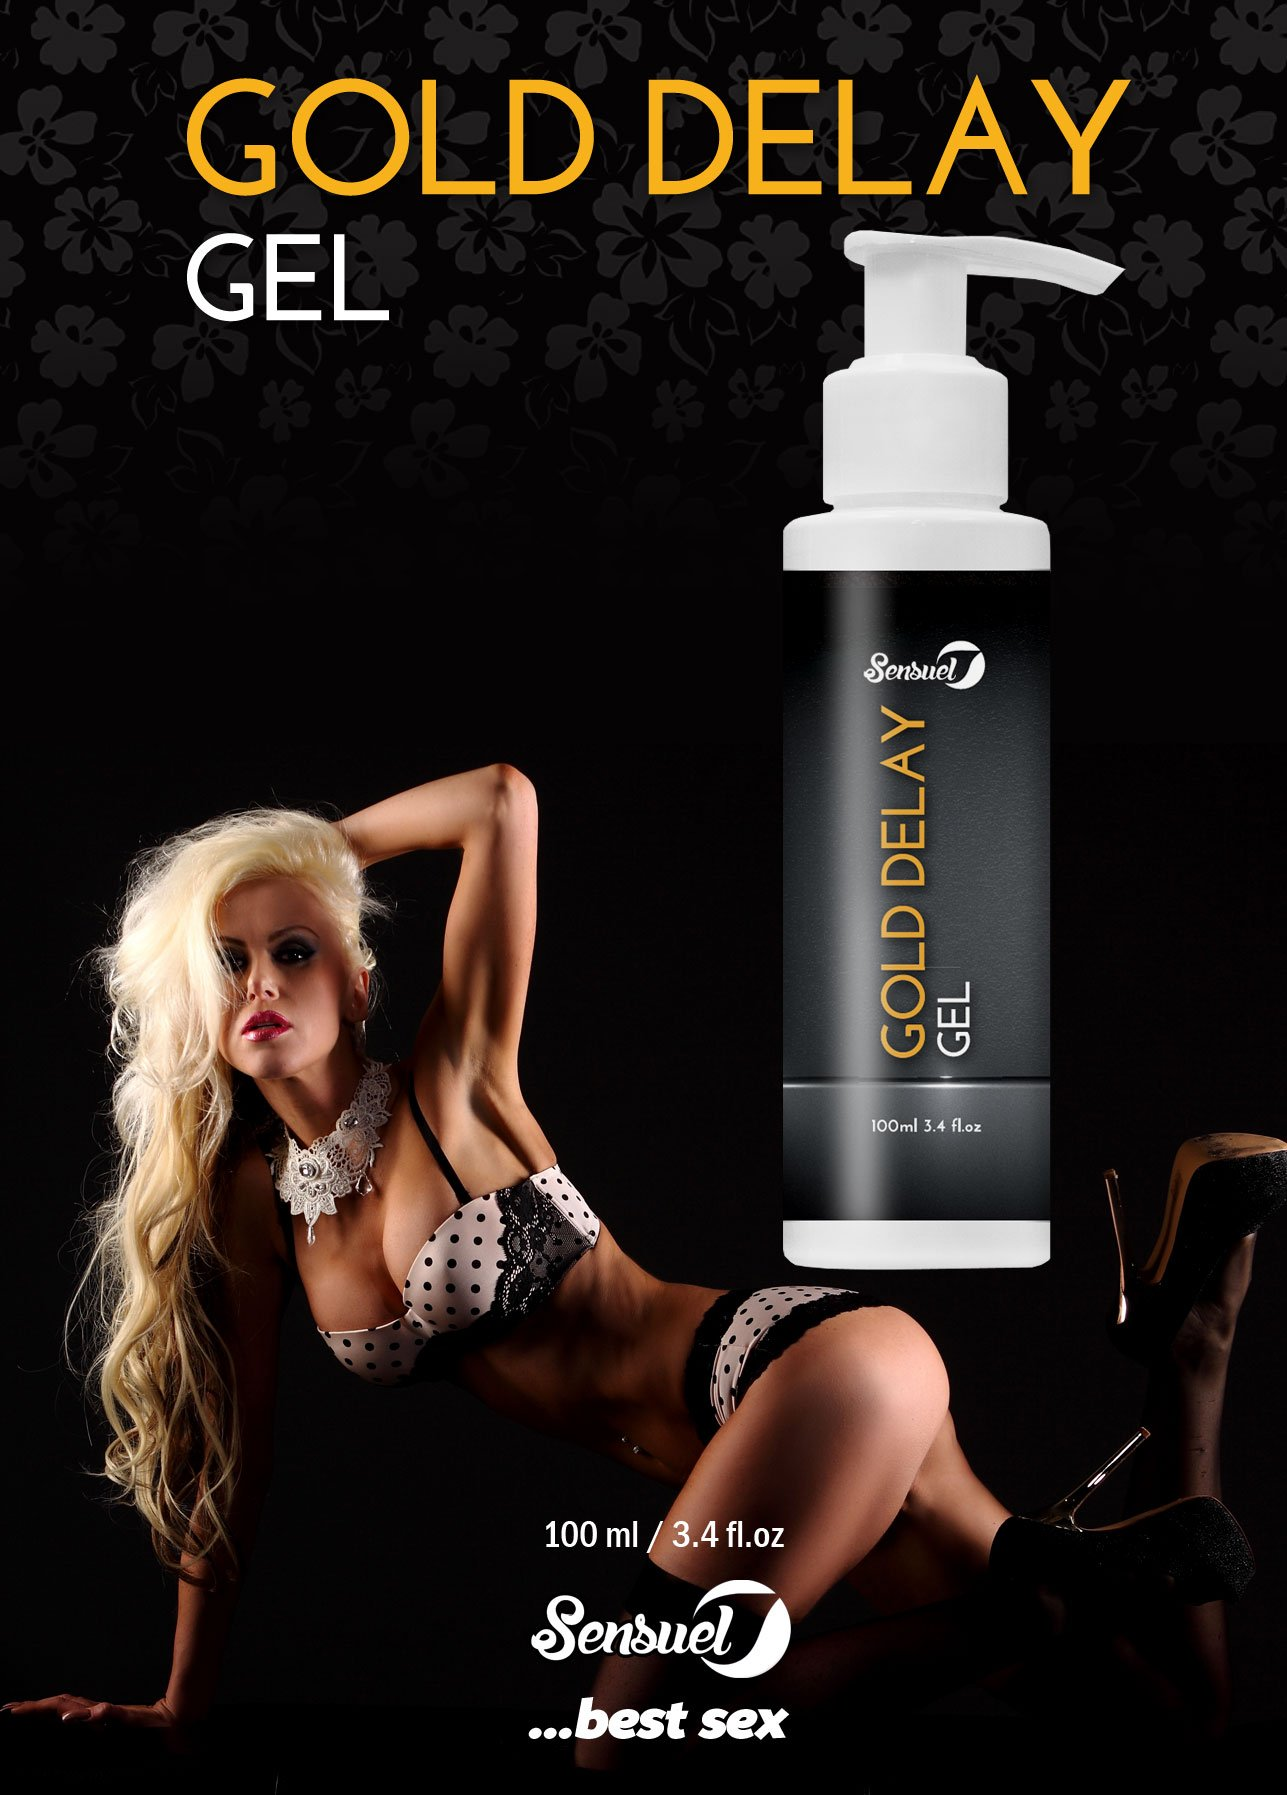 Gold_Delay_Gel_100ml_Sensuel_4.jpg